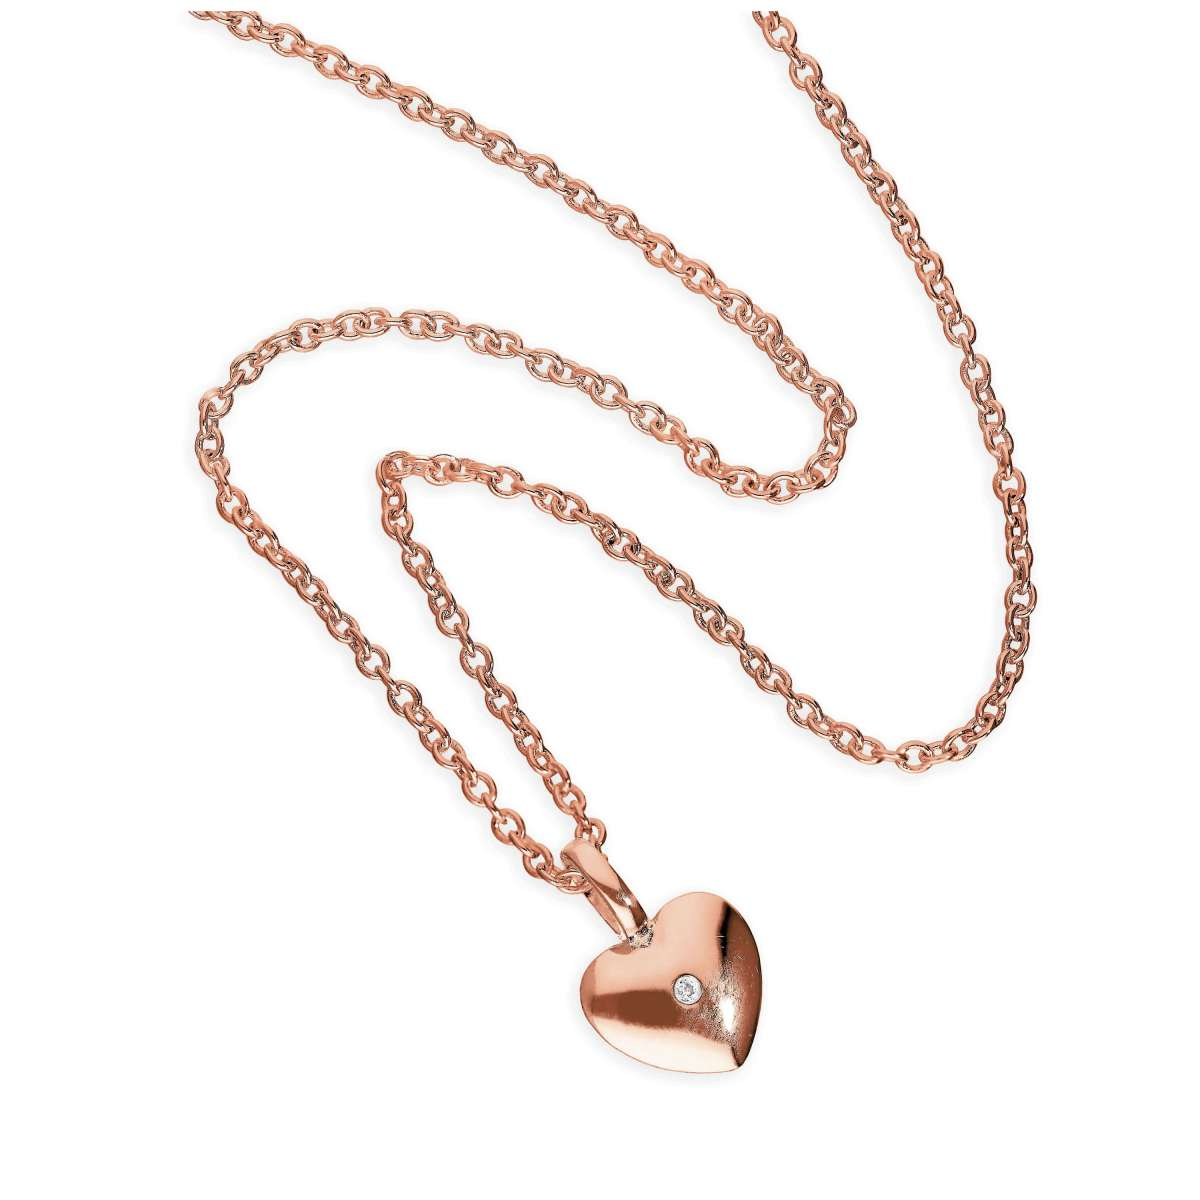 Alterative image for Rose Gold Plated Sterling Silver & Genuine Diamond 18 Inch Heart Necklace